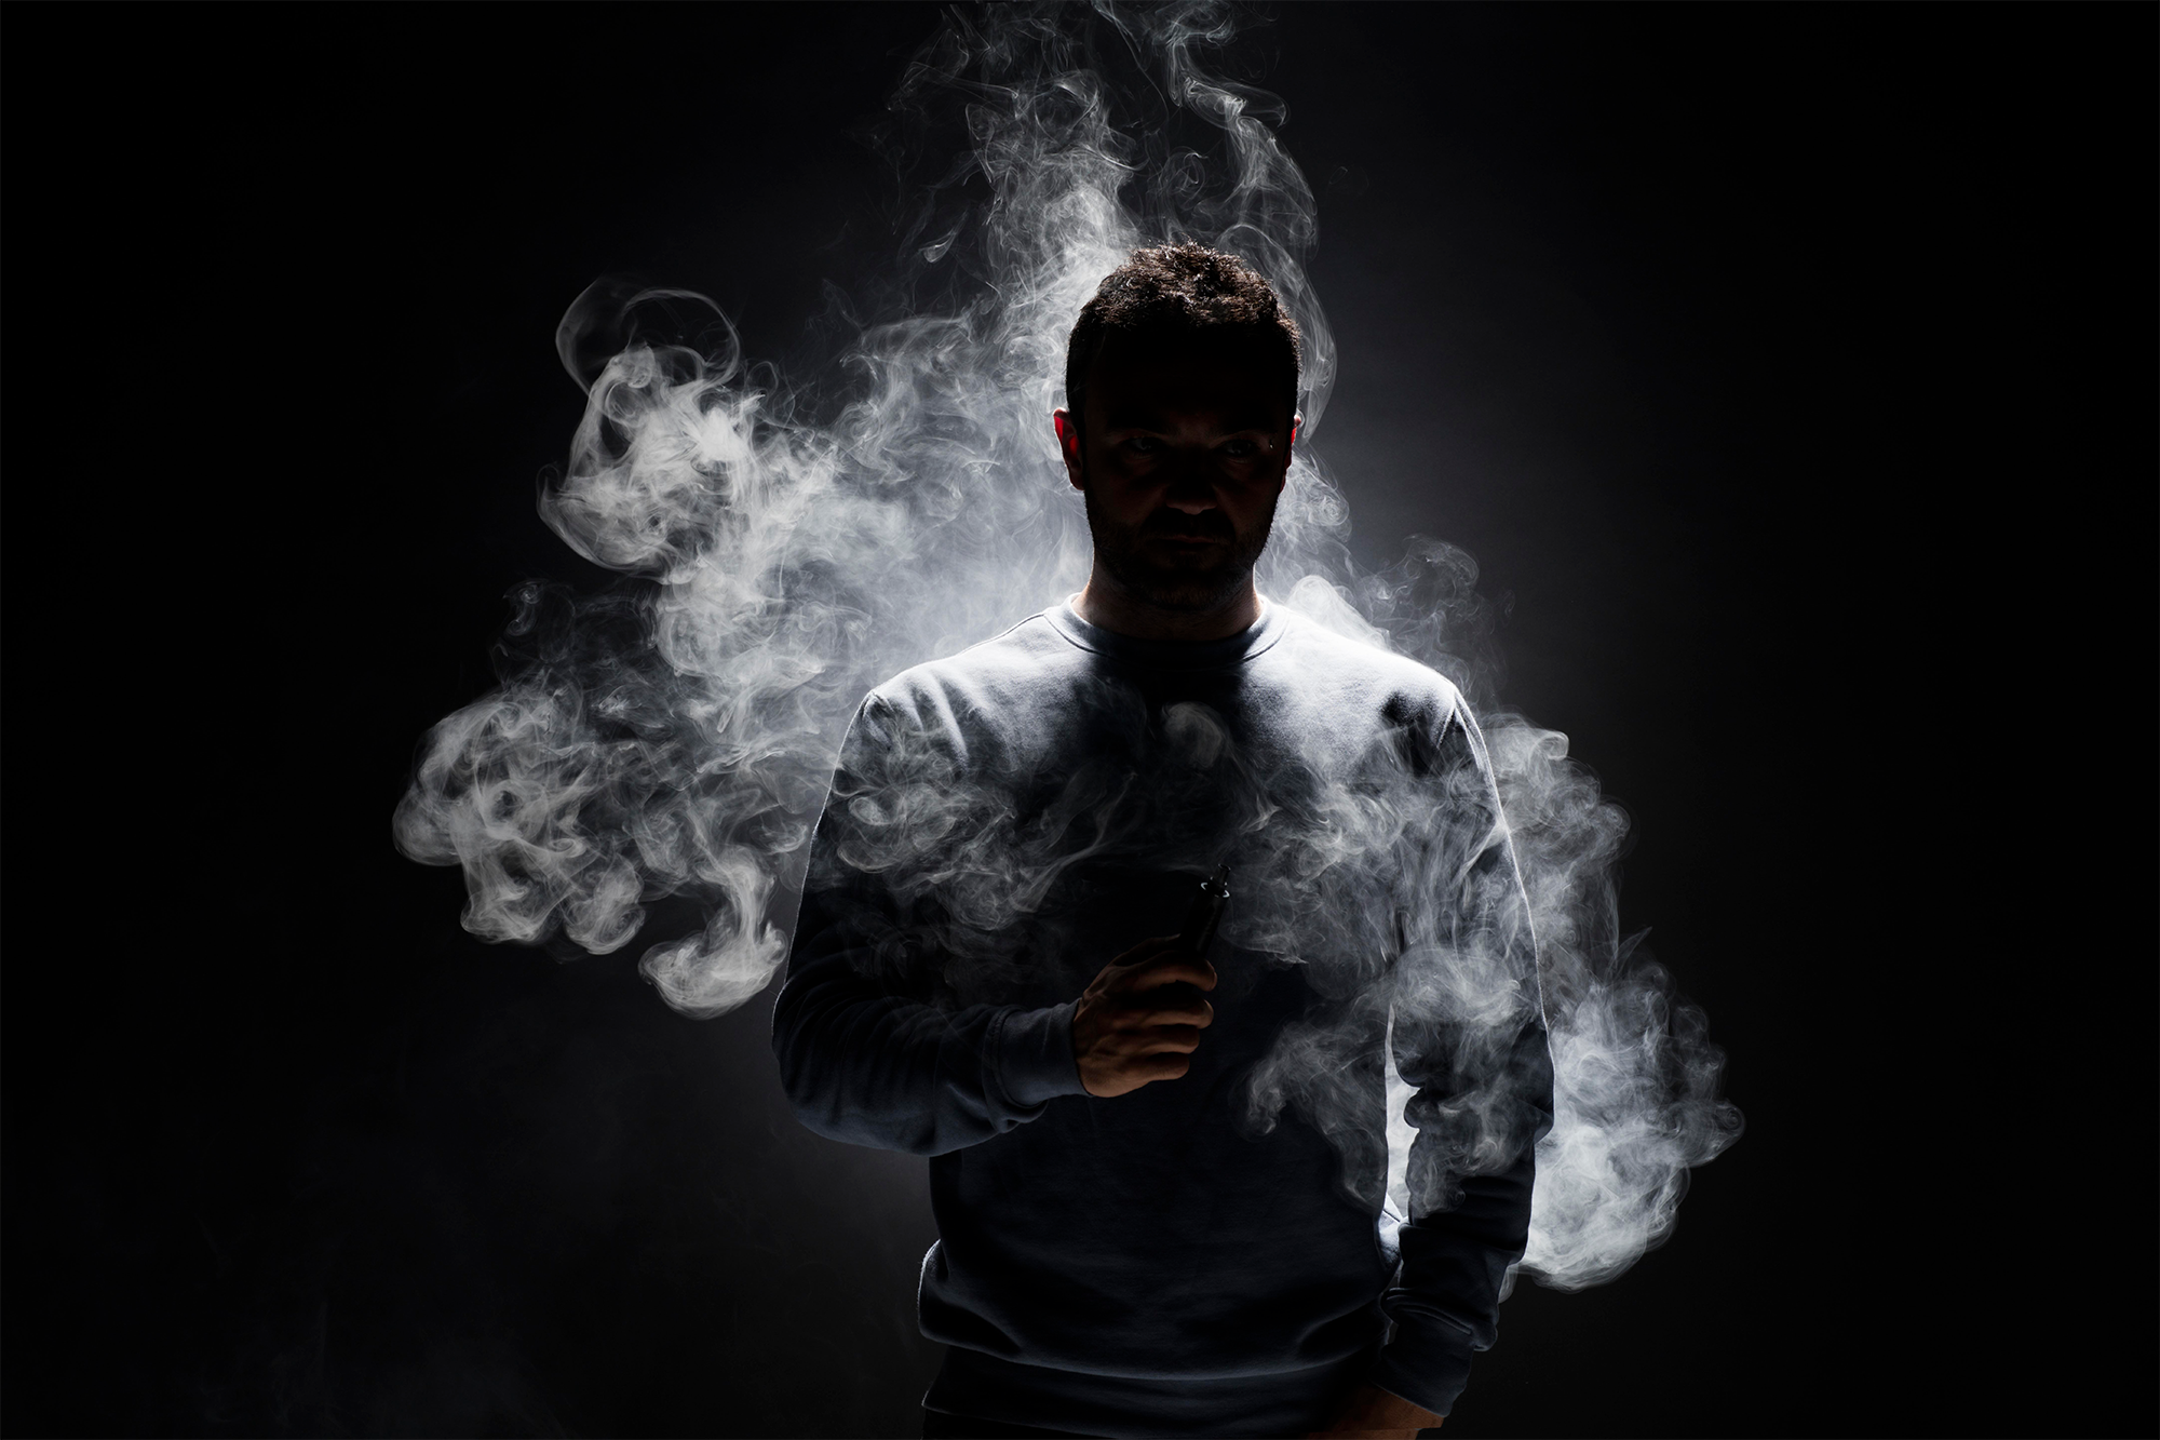 Is vaping safer than smoking? Depends who you ask, and what scientific study they point to